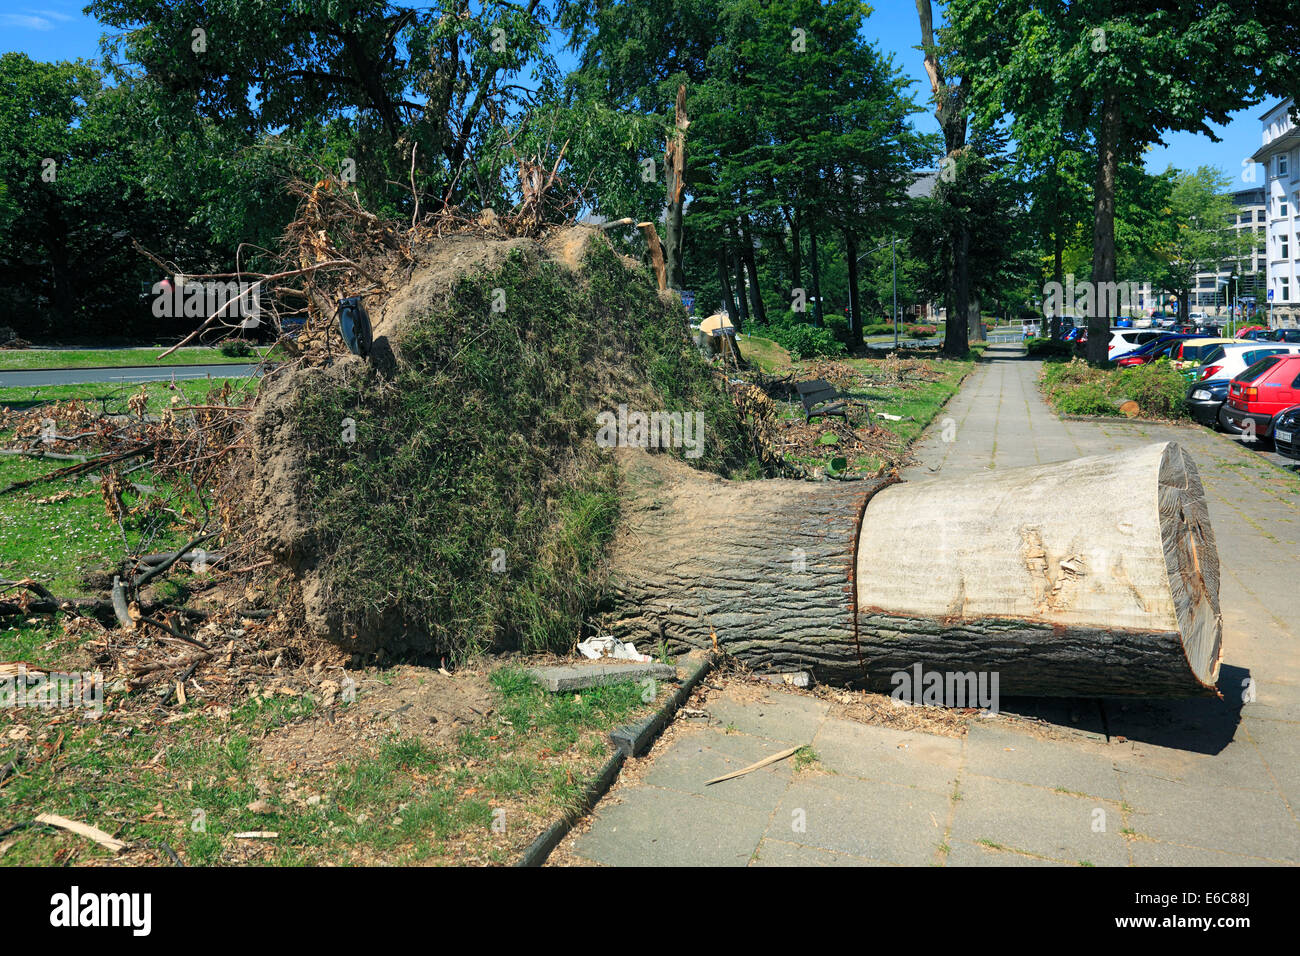 storm damages by depression 'Ela' on June 9, 2014 an June 10, 2014, disrooted tree on a pavement at Haumann - Stock Image